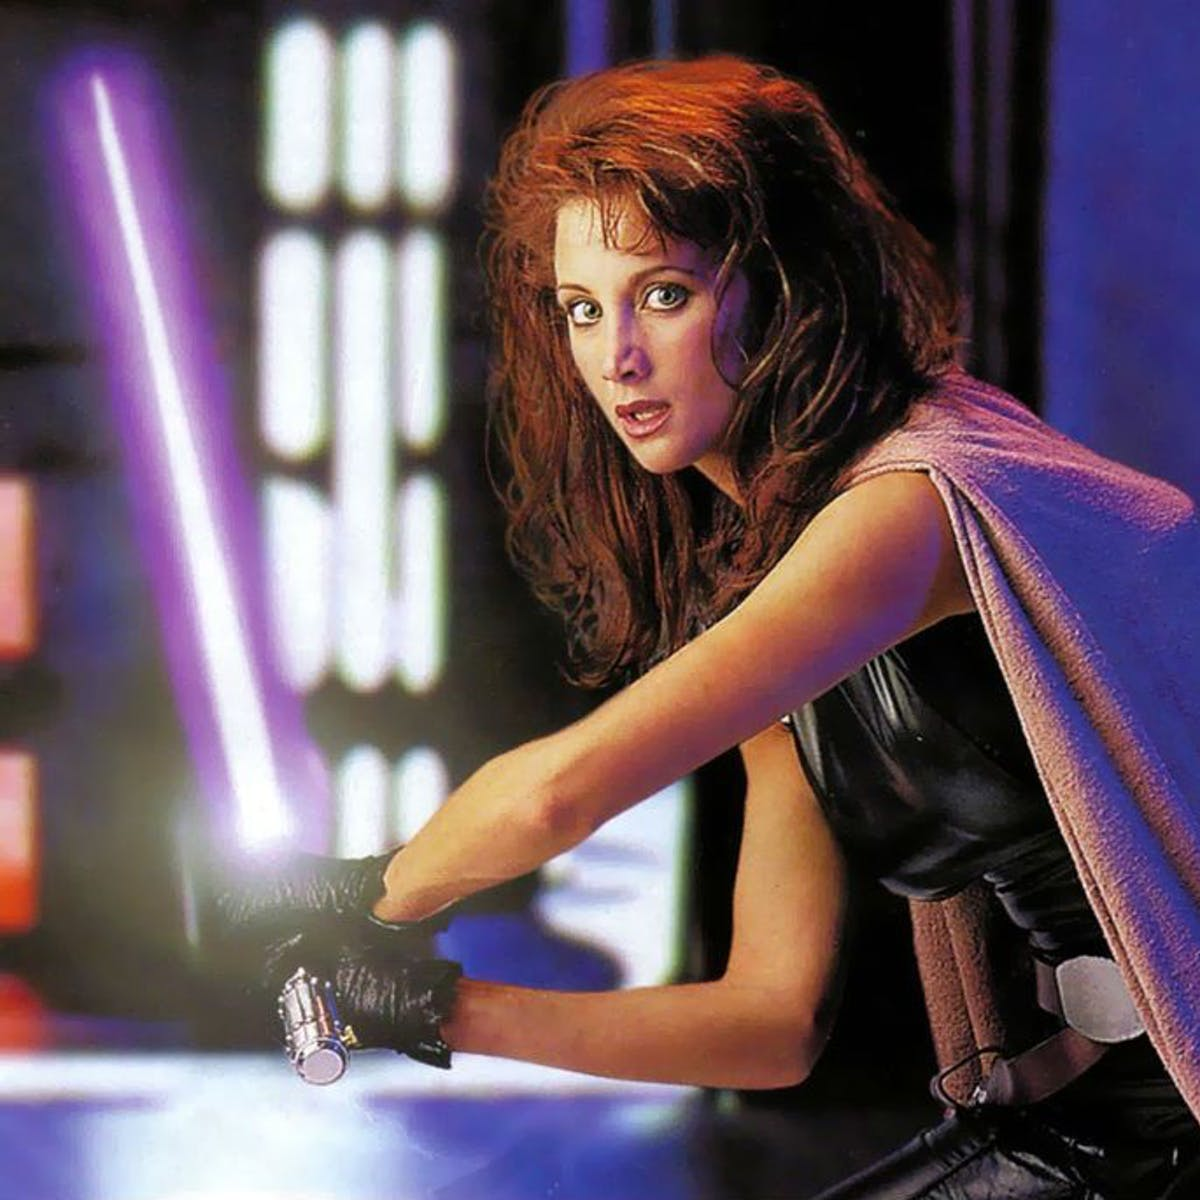 'Rise of Skywalker' Theory: Mara Jade in 'Mandalorian' Sets Up Palps Return